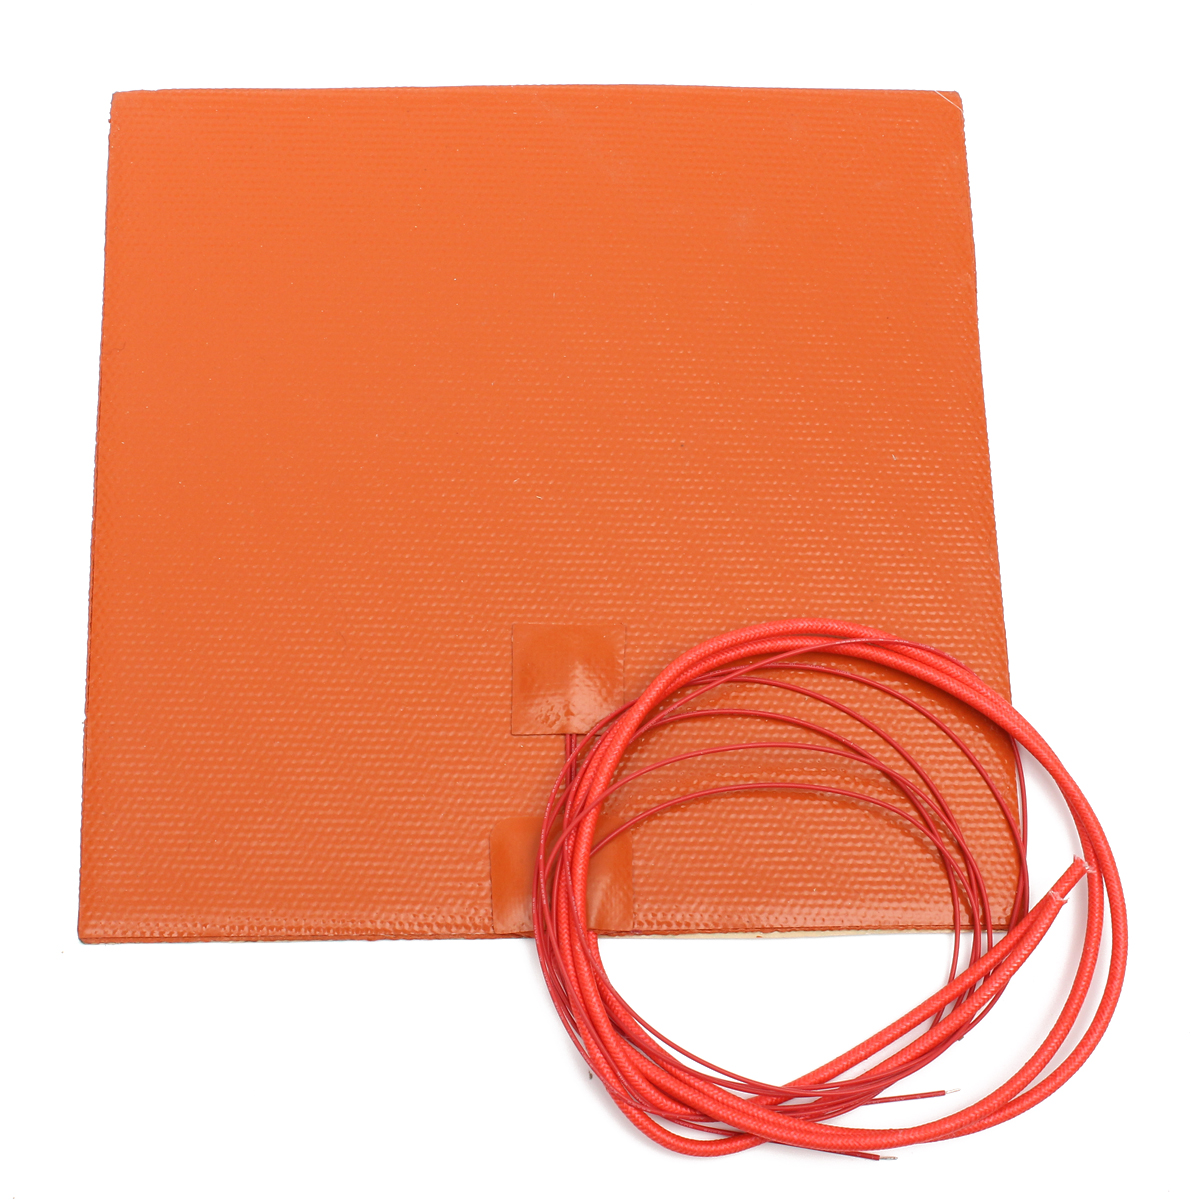 Bed Heater 12v 200w 200mmx200mm Waterproof Flexible Silicone Heating Pad Heater For 3d Printer Heat Bed